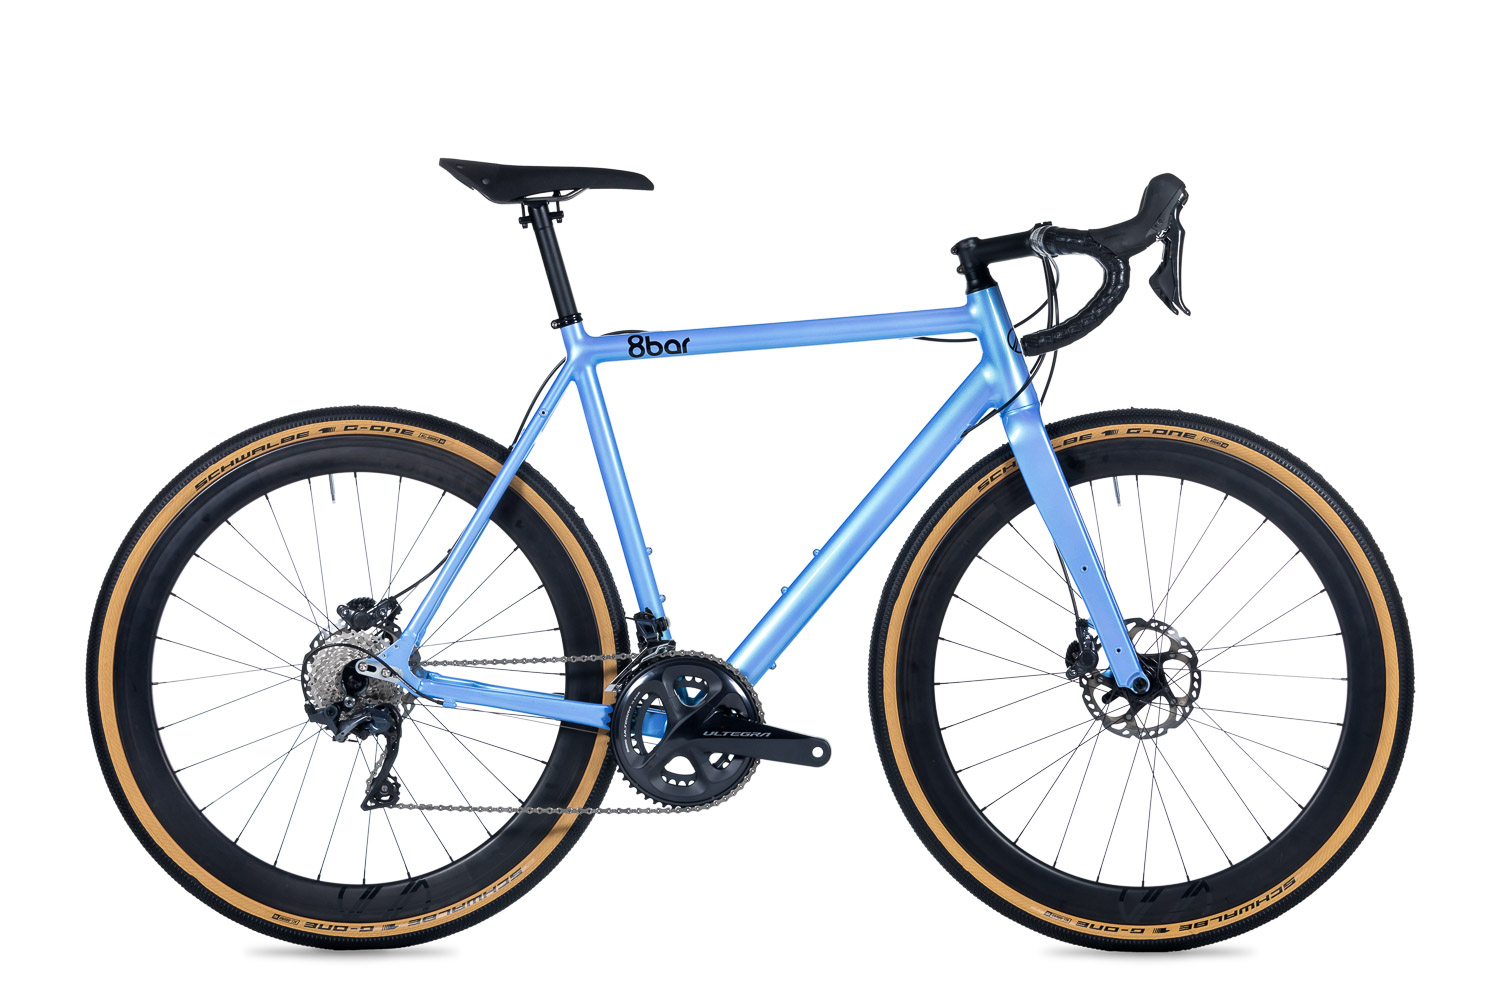 8bar-complete-bike-mitte-gravel-pro-blue-studio-lr-1